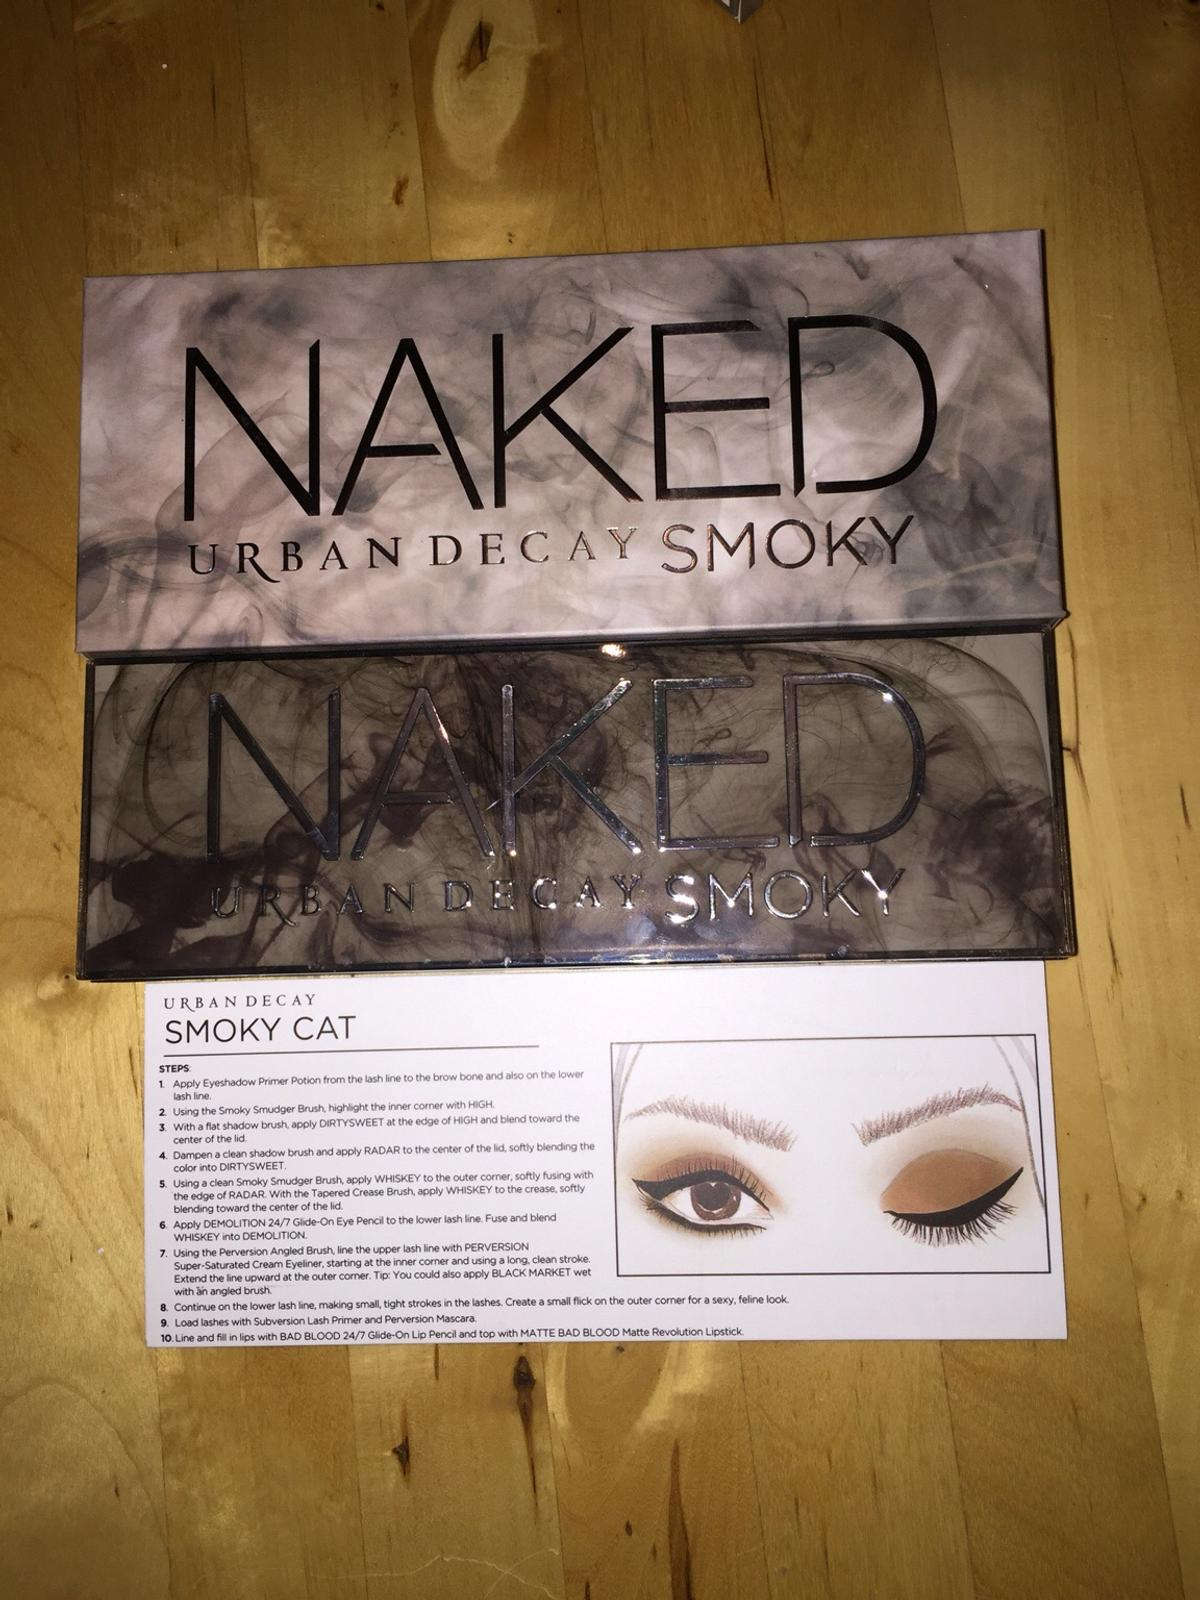 Urban decay naked smoky in RM6 London for £20 00 for sale